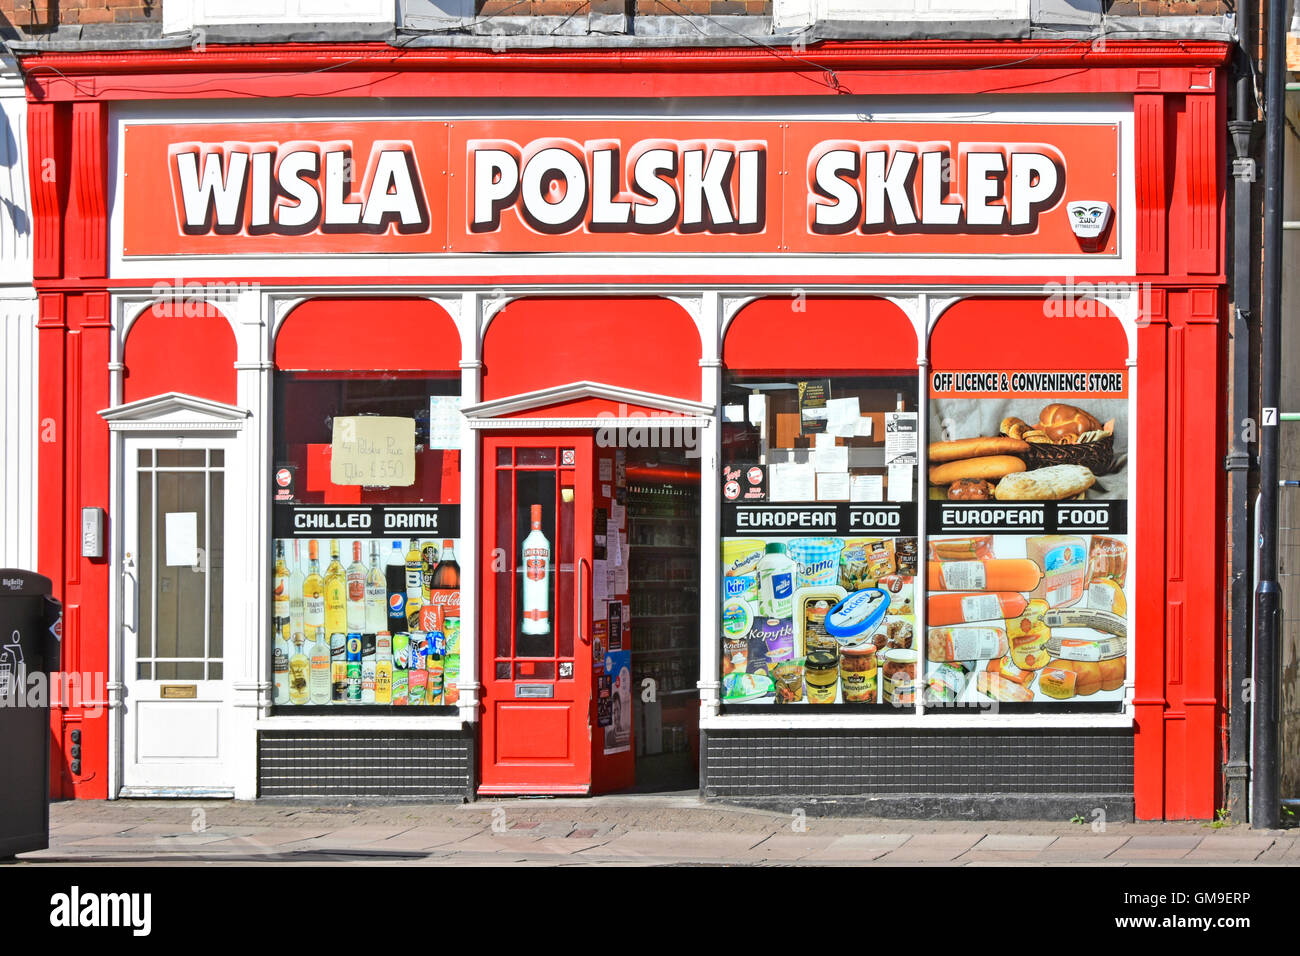 47d5ebe4dd163 Polski Sklep Polish Shop Off License and Convenience Store shop front with window  posters in town centre of Rugby Warwickshire England UK